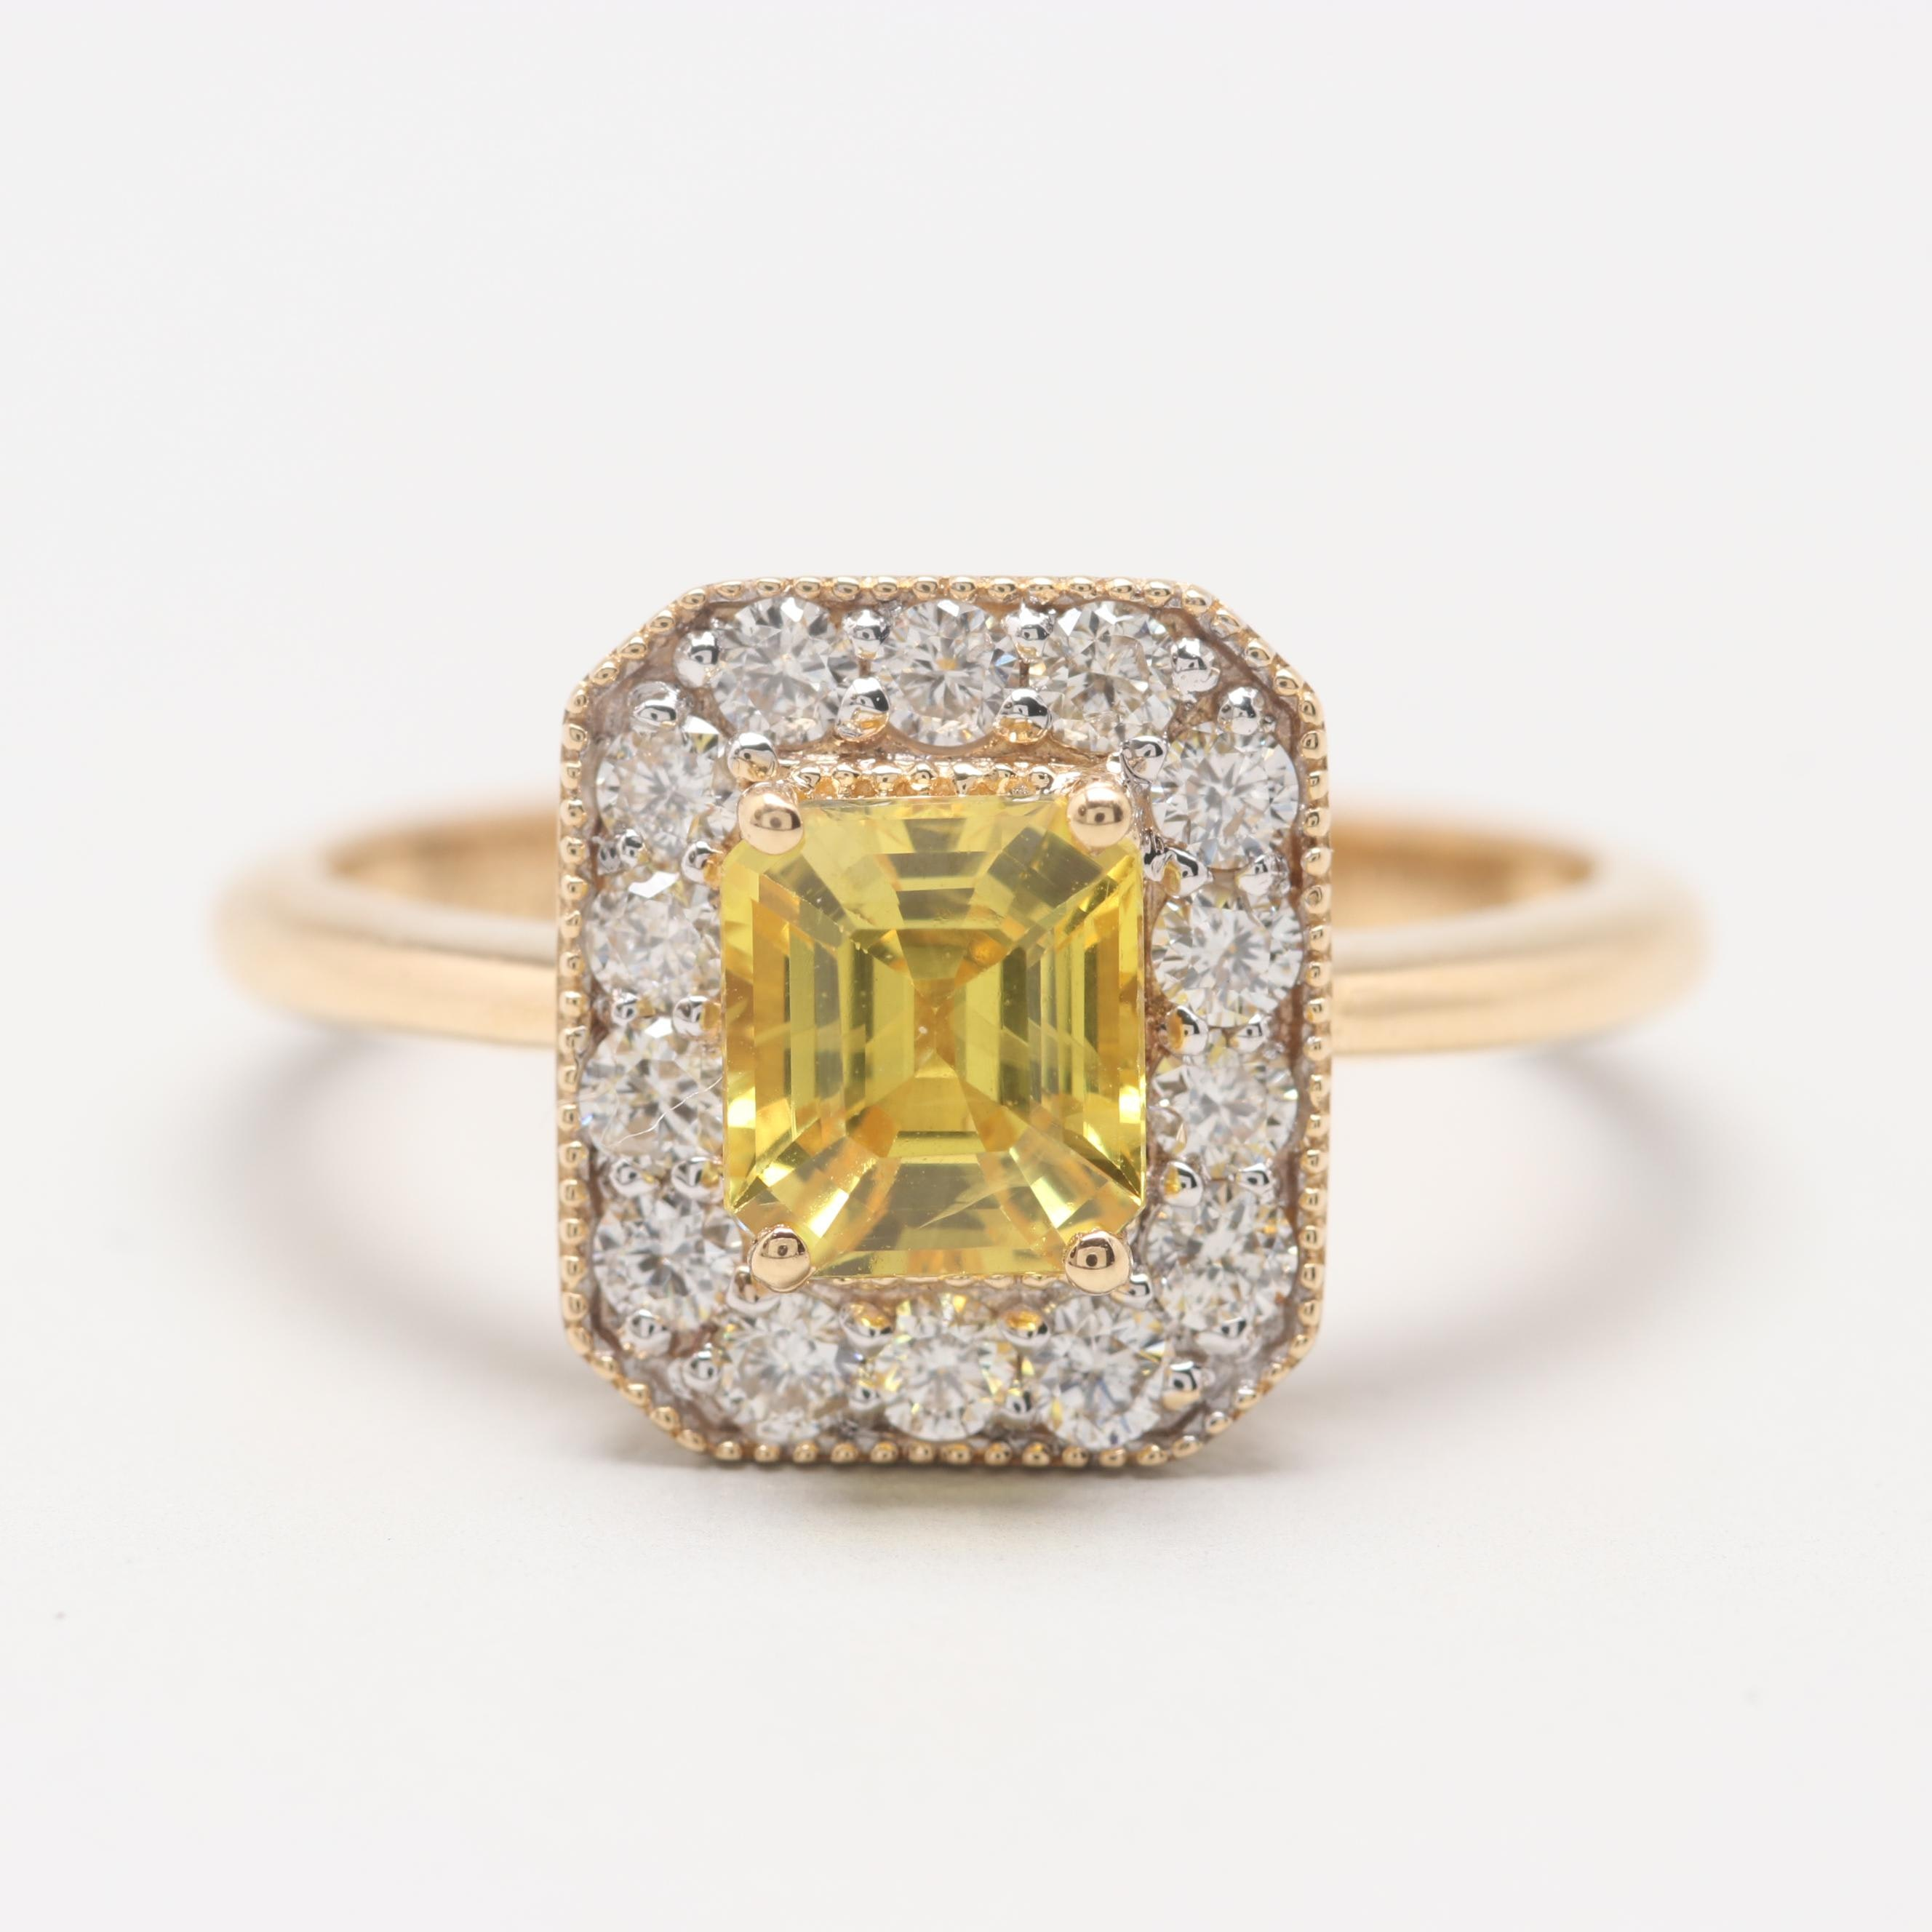 18K Yellow Gold 1.21 CT Yellow Sapphire and Diamond Ring